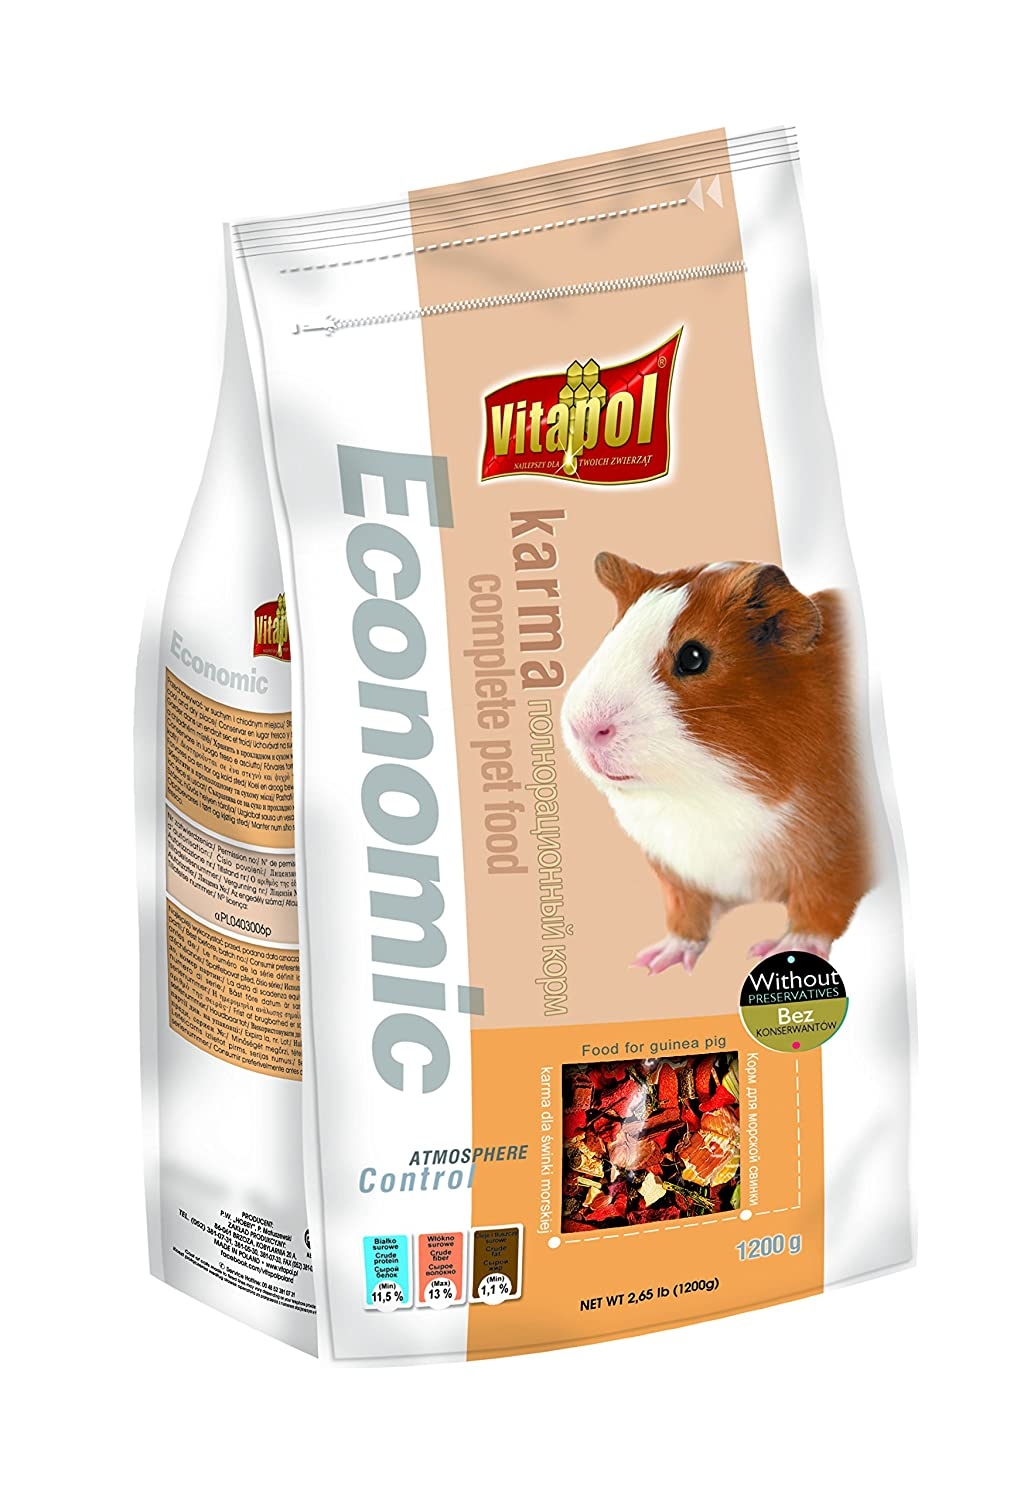 Economic Food for GUINEA PIG - 1.2kg - Pet Chum